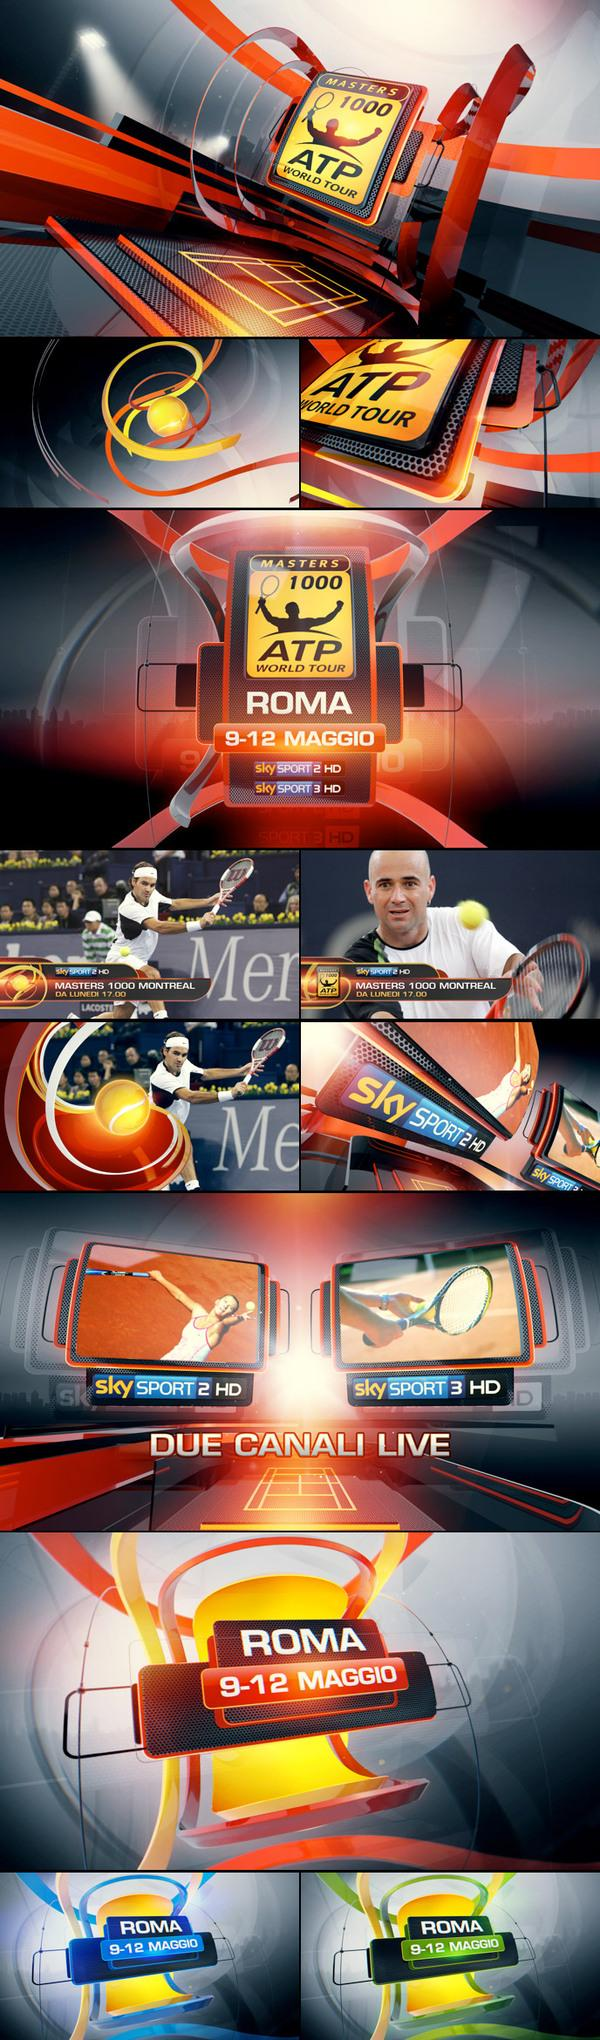 SkySport promo toolkit